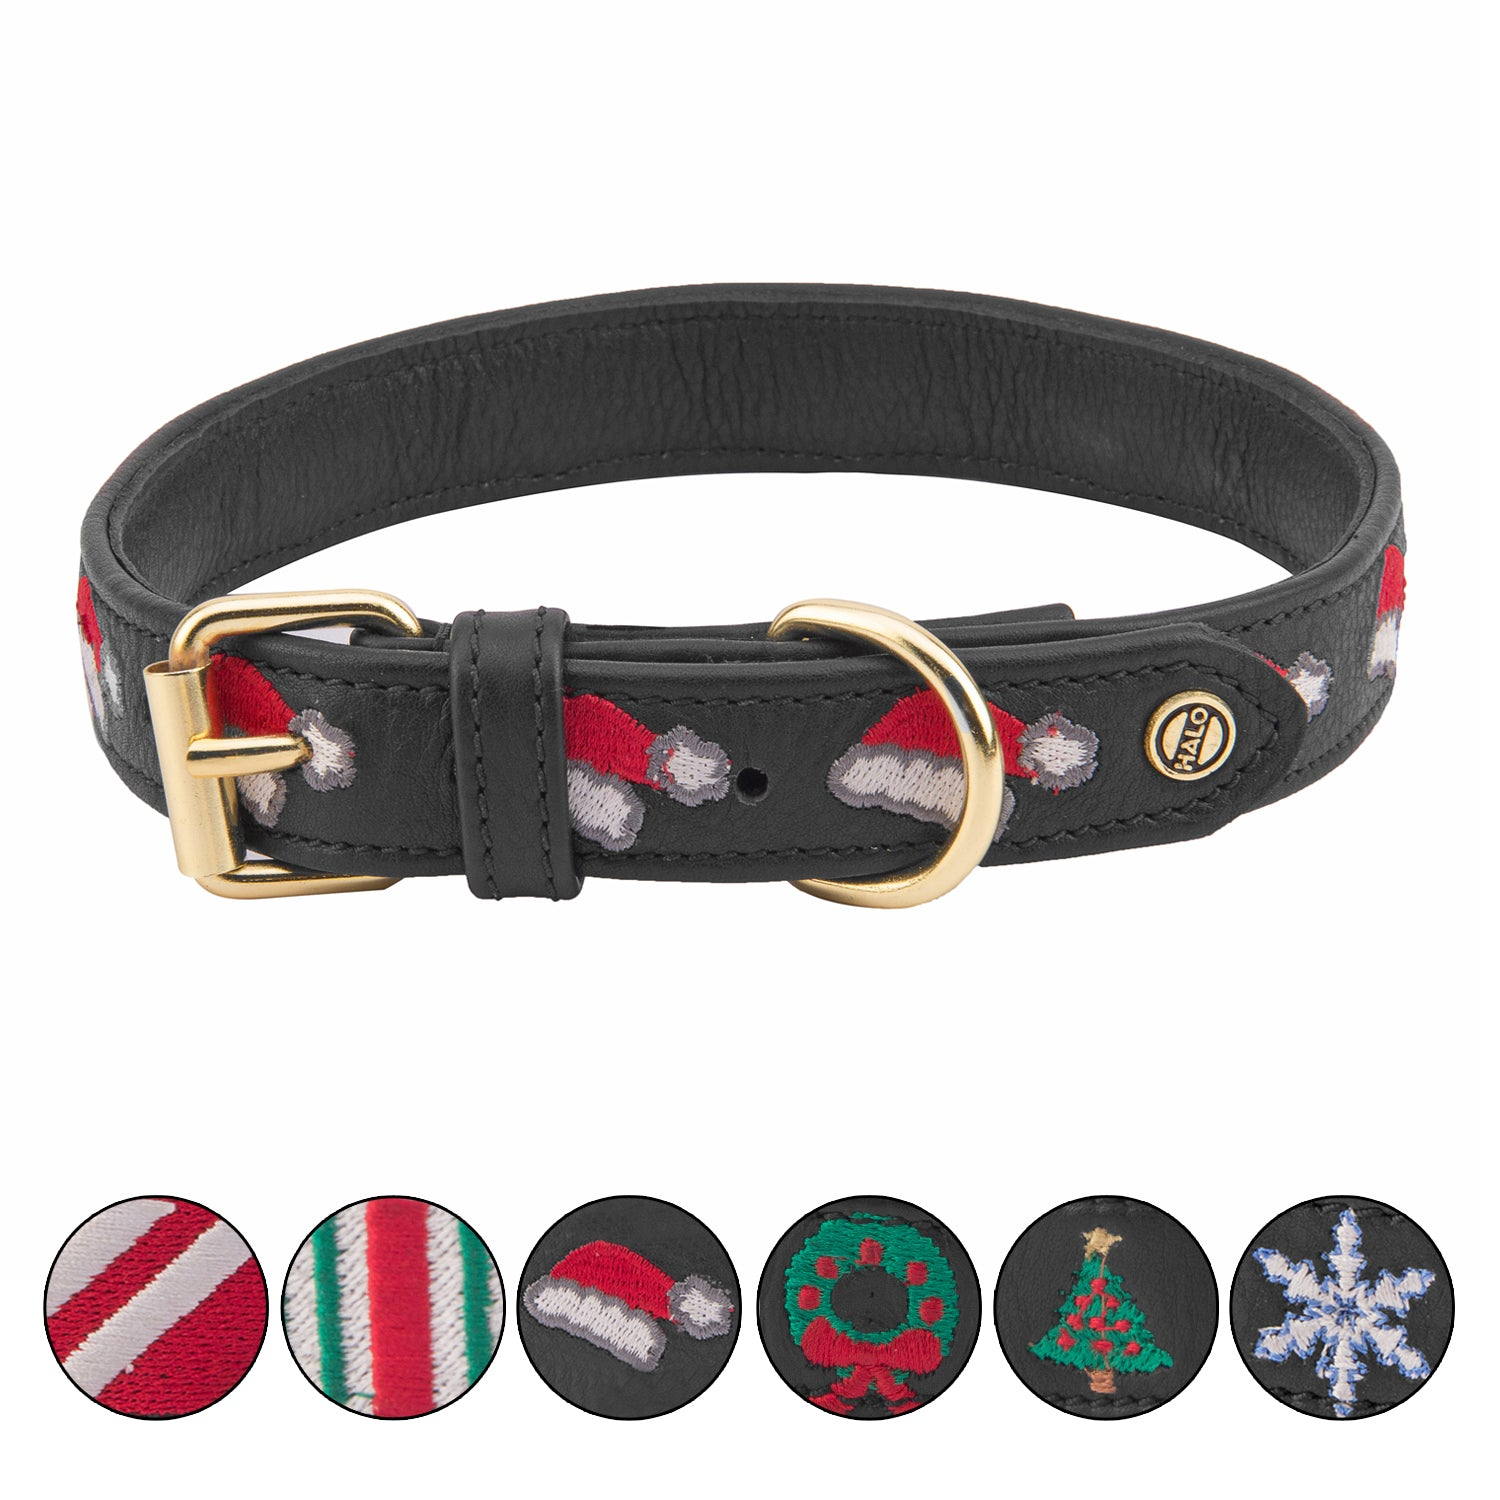 Halo Dog Collar - Leather with Christmas Santa Hat Embroidery_1